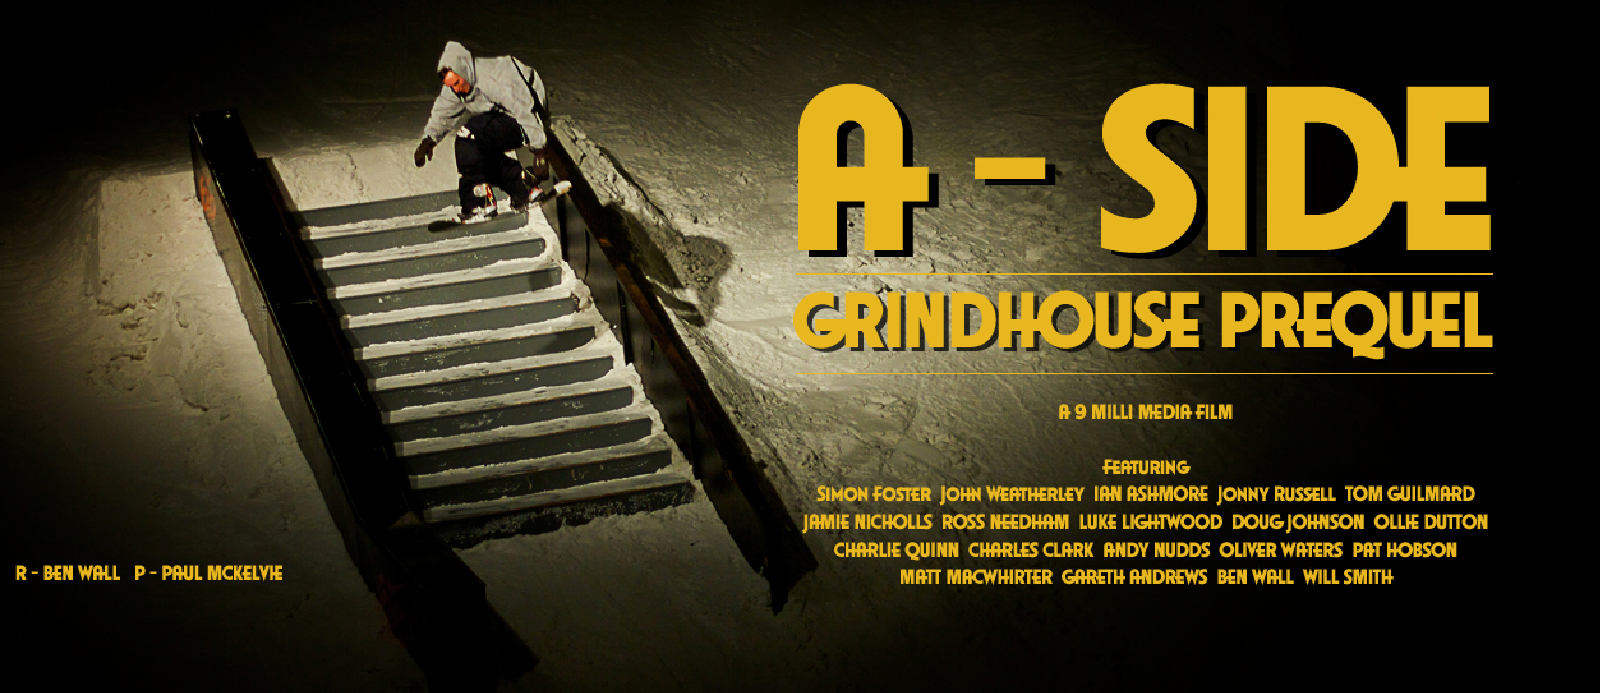 Grindhouse 'Prequel' A side now online